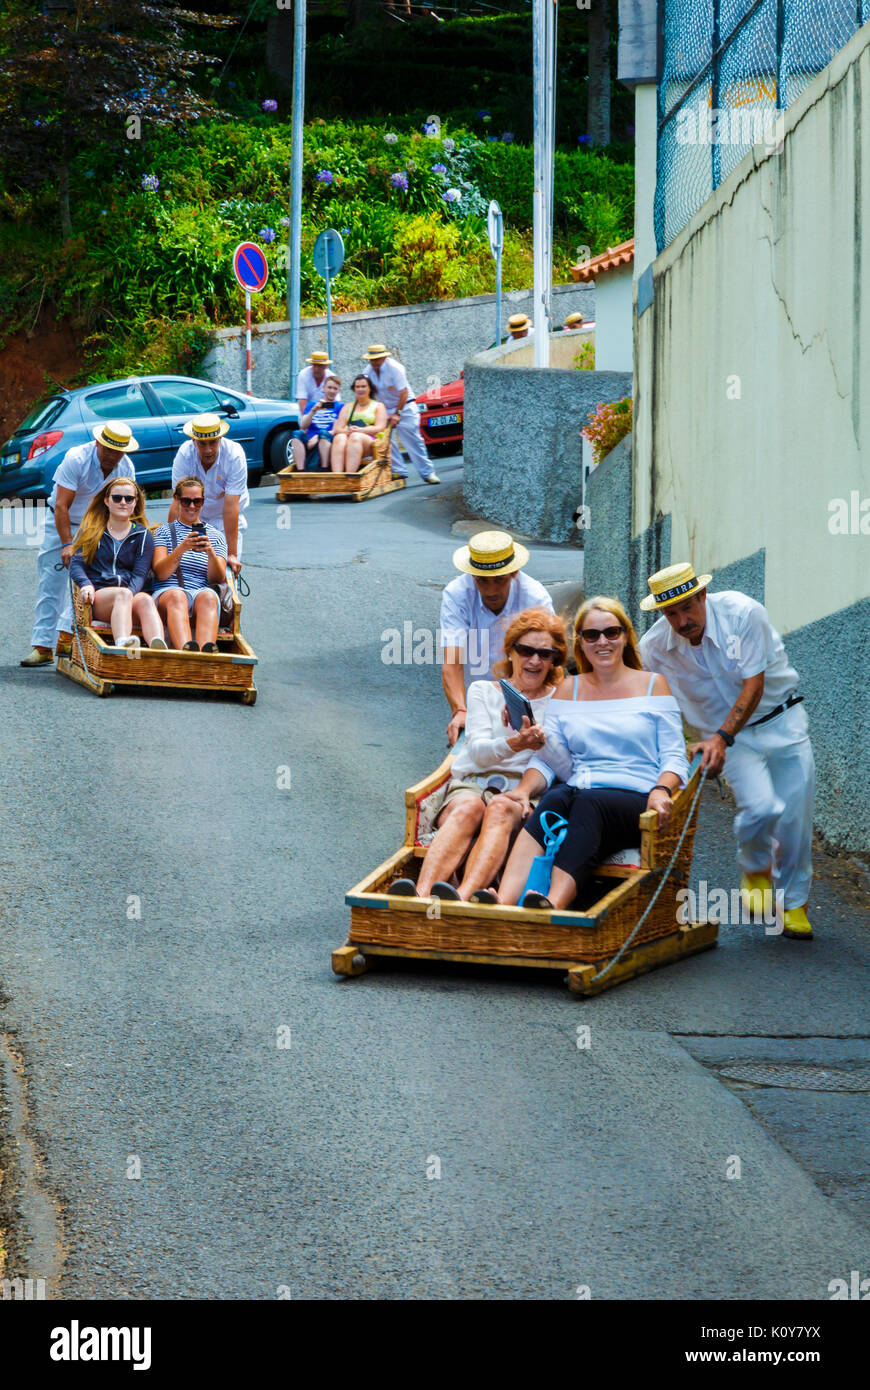 Toboggan ride going down in Monte. - Stock Image